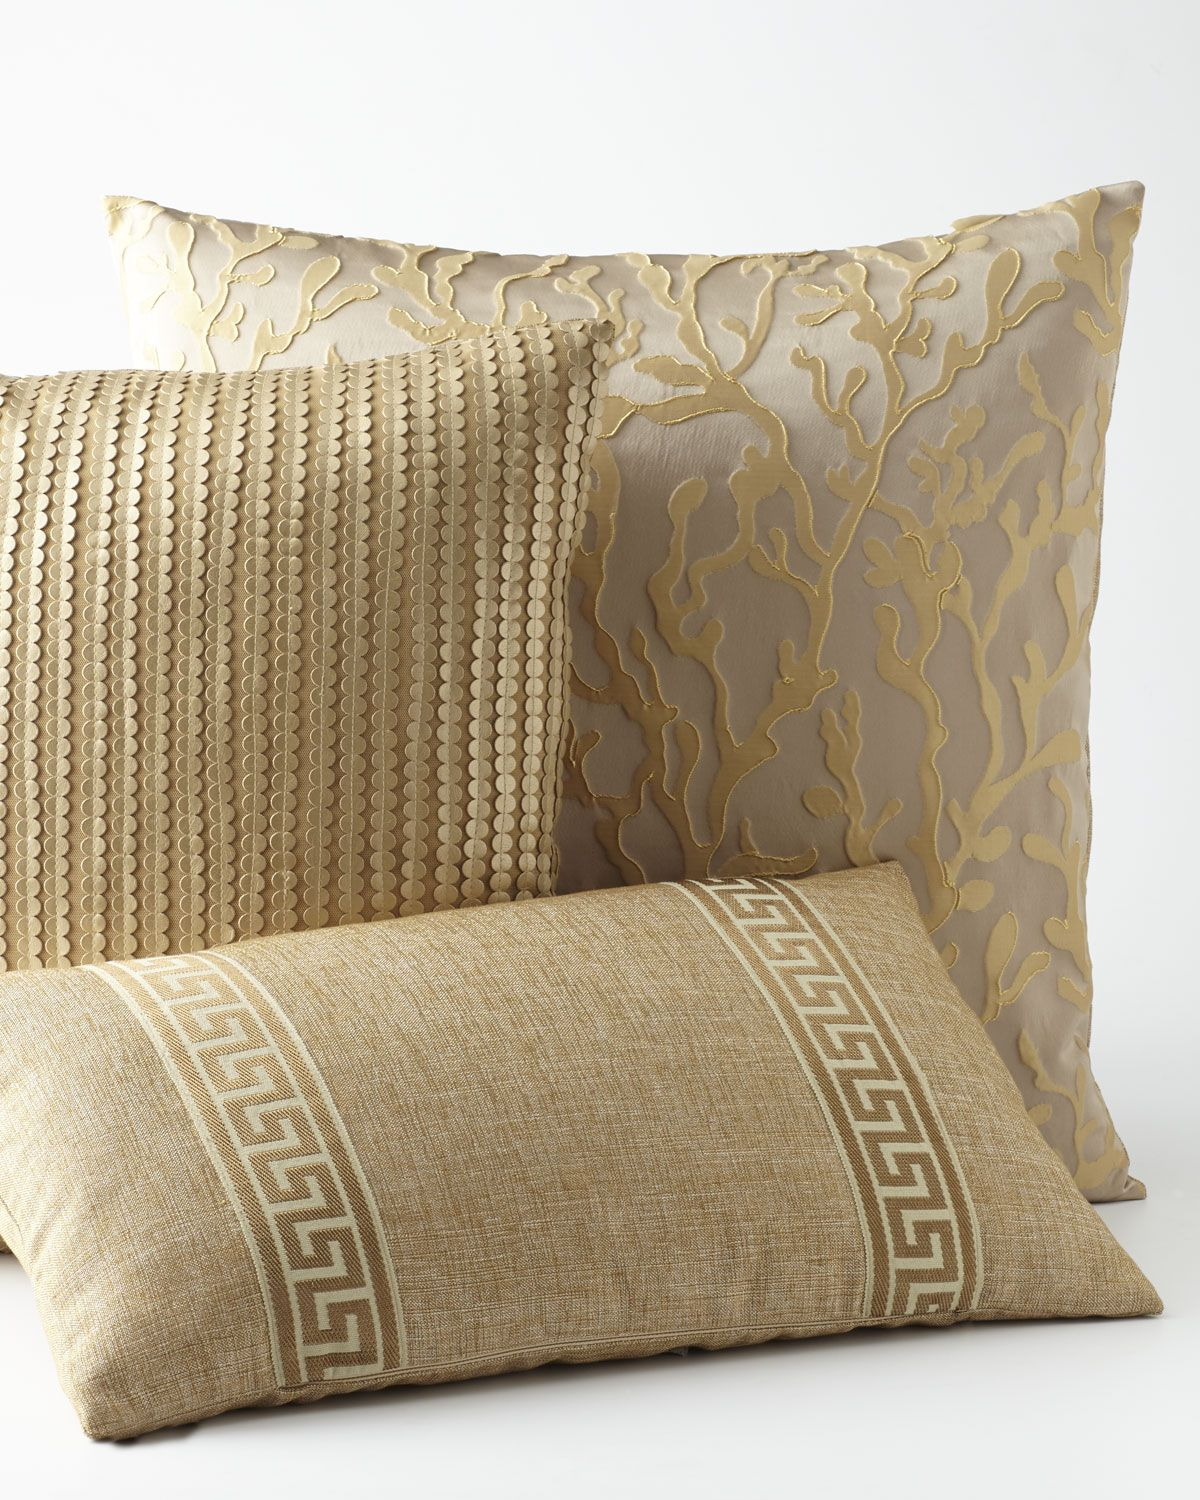 Cojines Plateados Taylor Pillows Horchow Pillows Pinterest Pillows